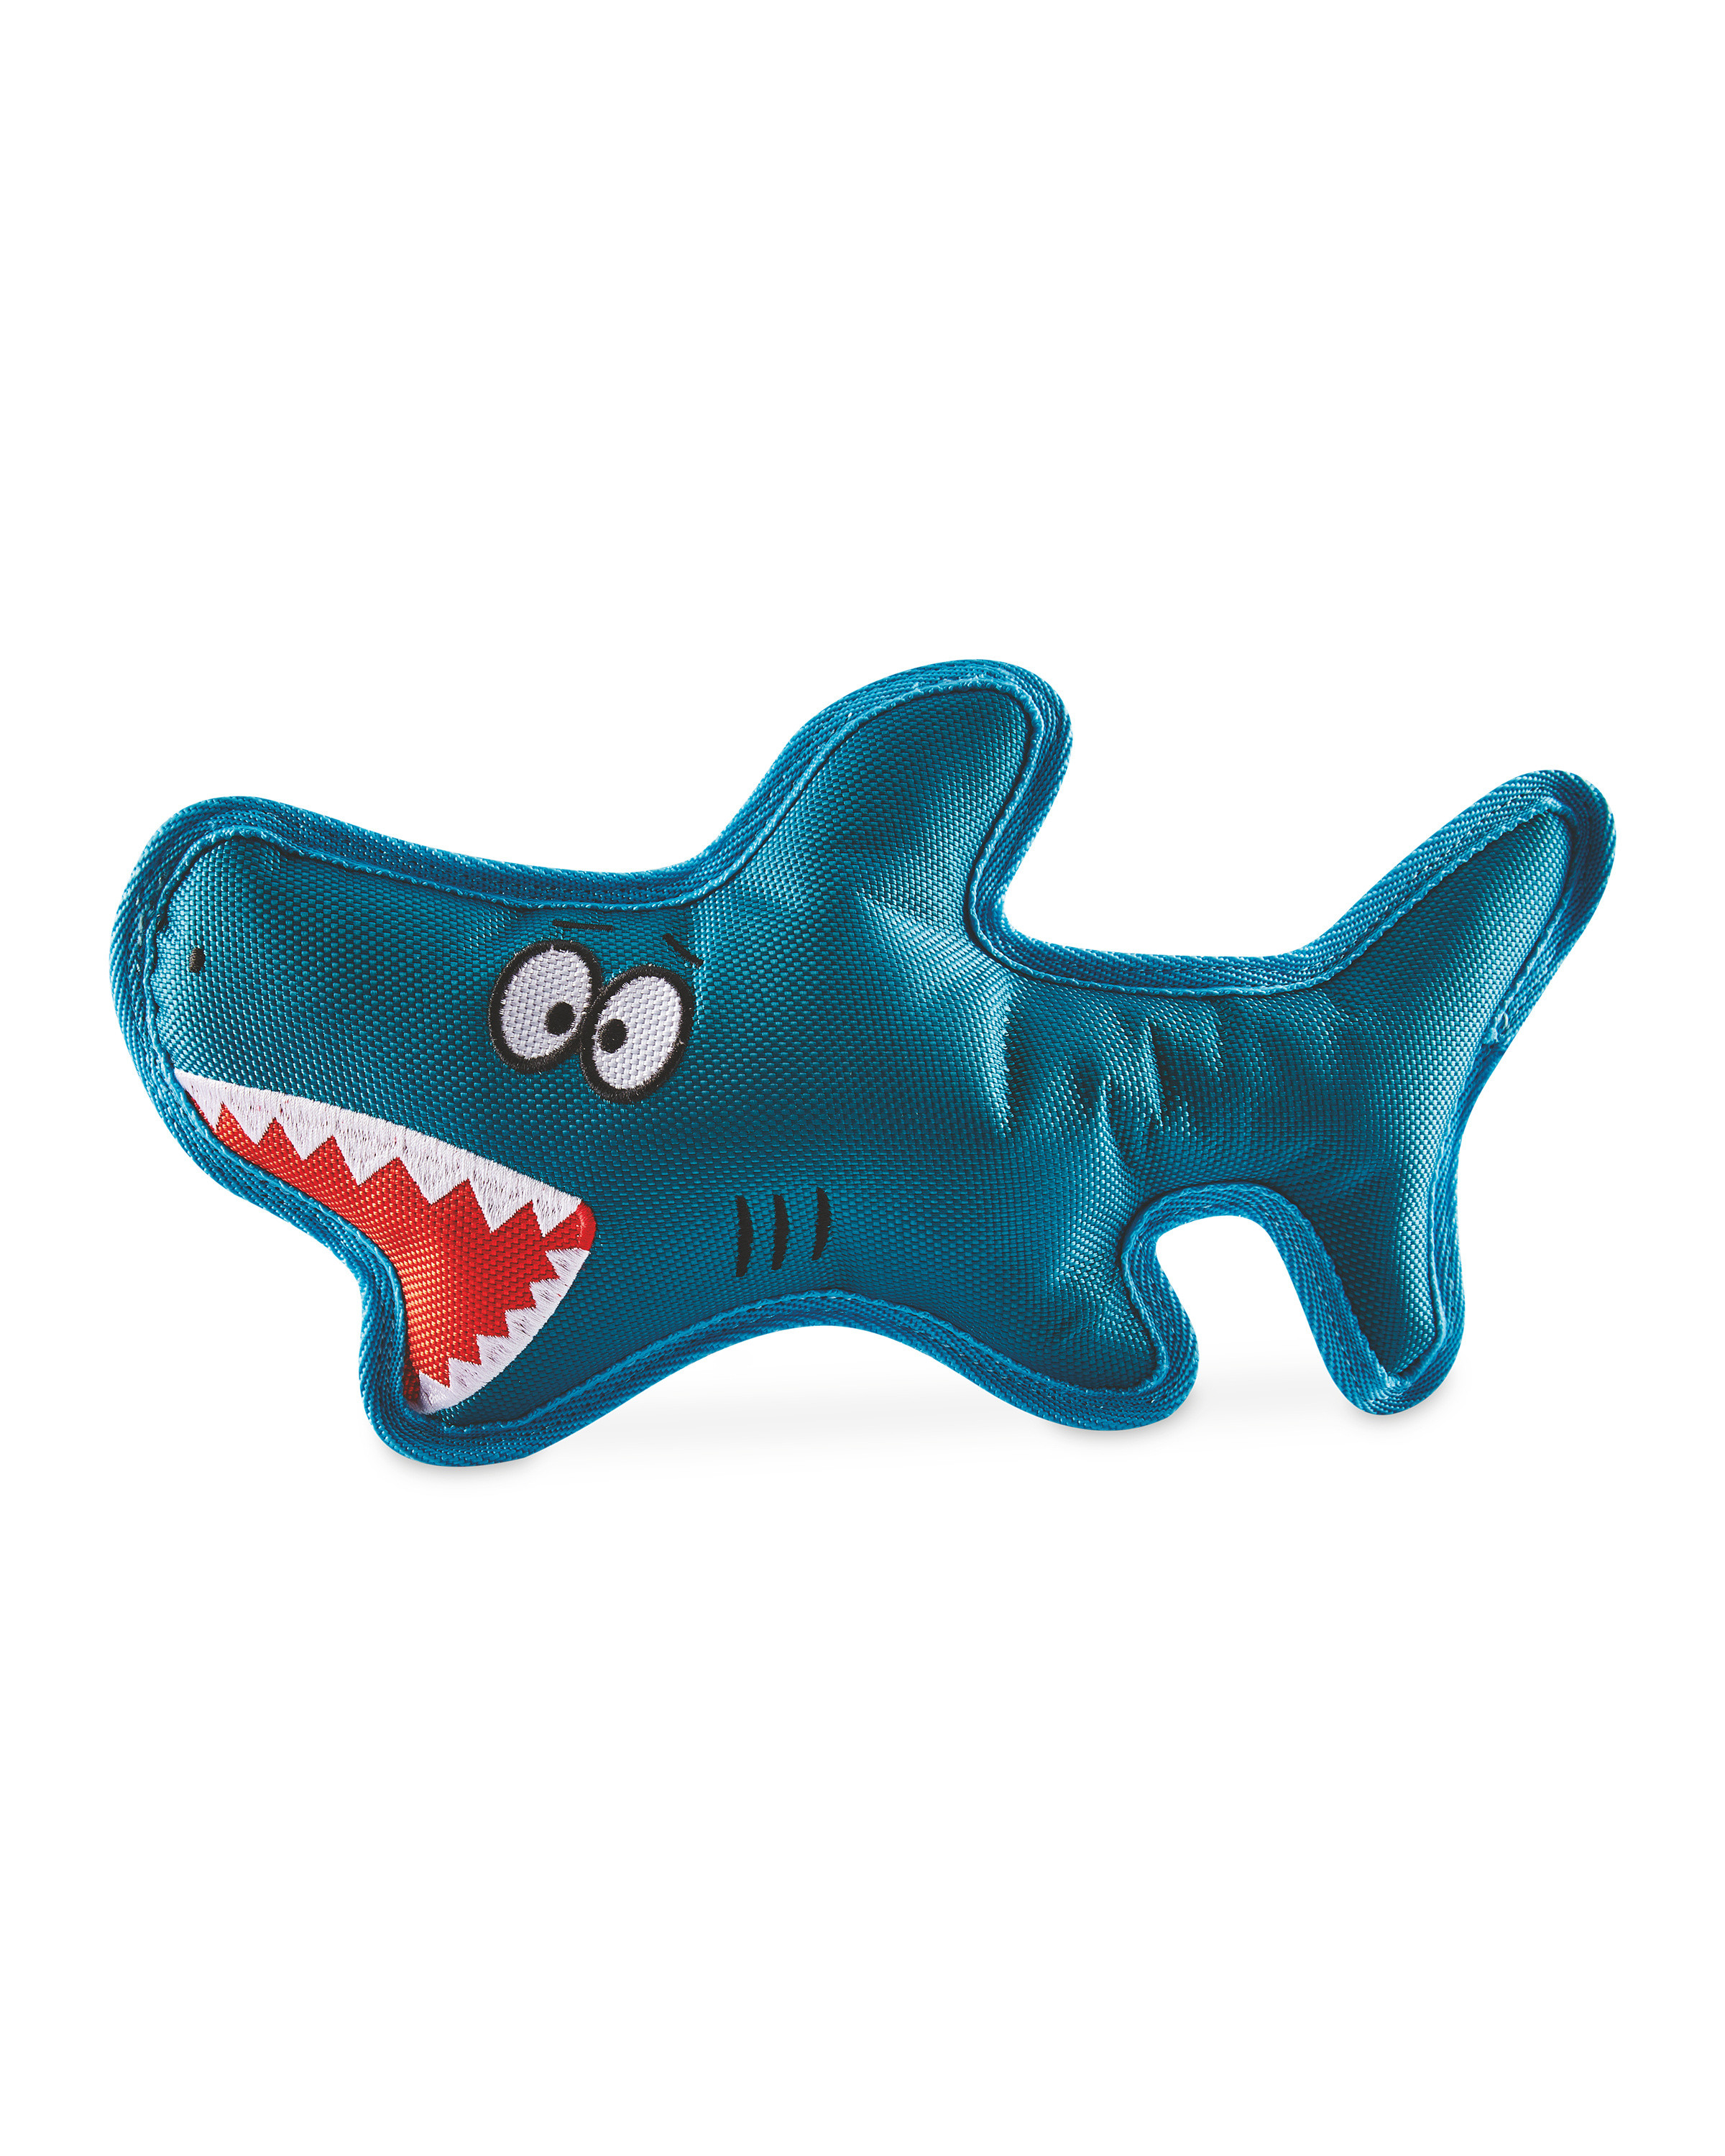 Pet Collection Shark Dog Toy